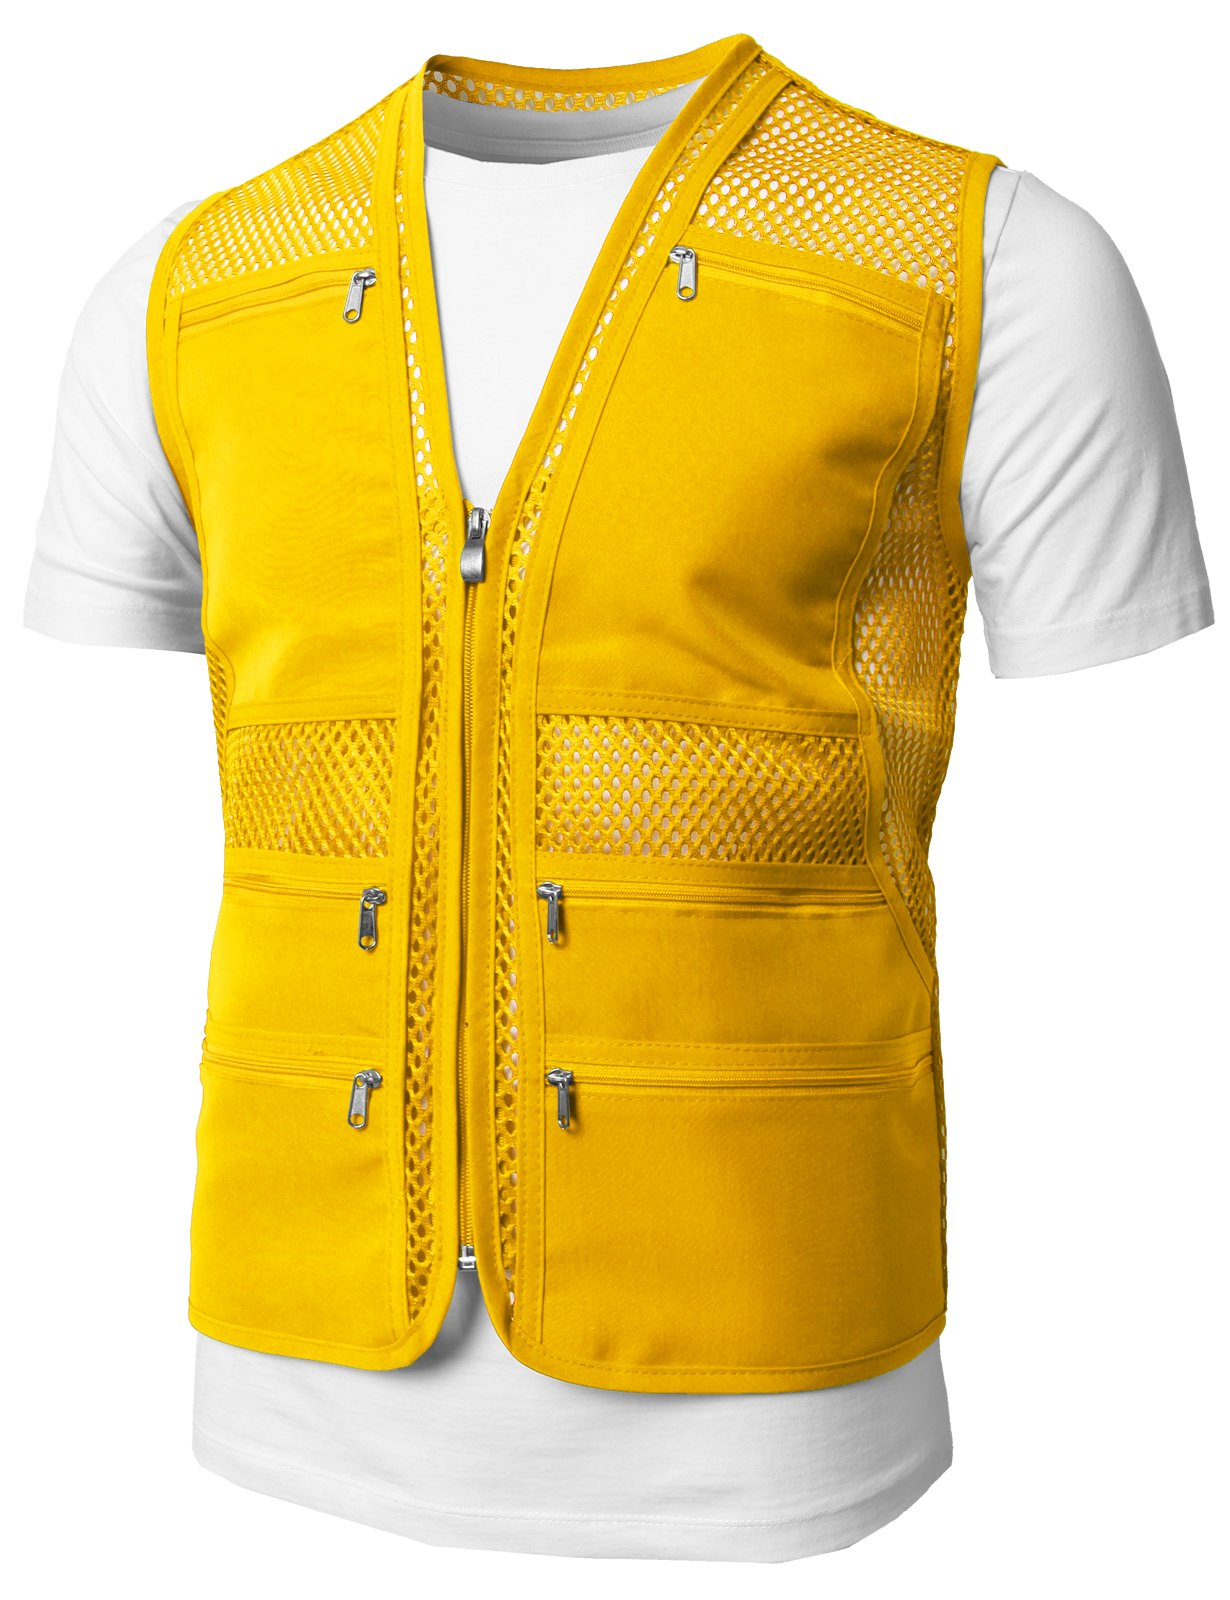 H2H Mens Casual Work Utility Hunting Travels Sports Mesh Vest With Pockets Yellow US M/Asia L (KMOV086)